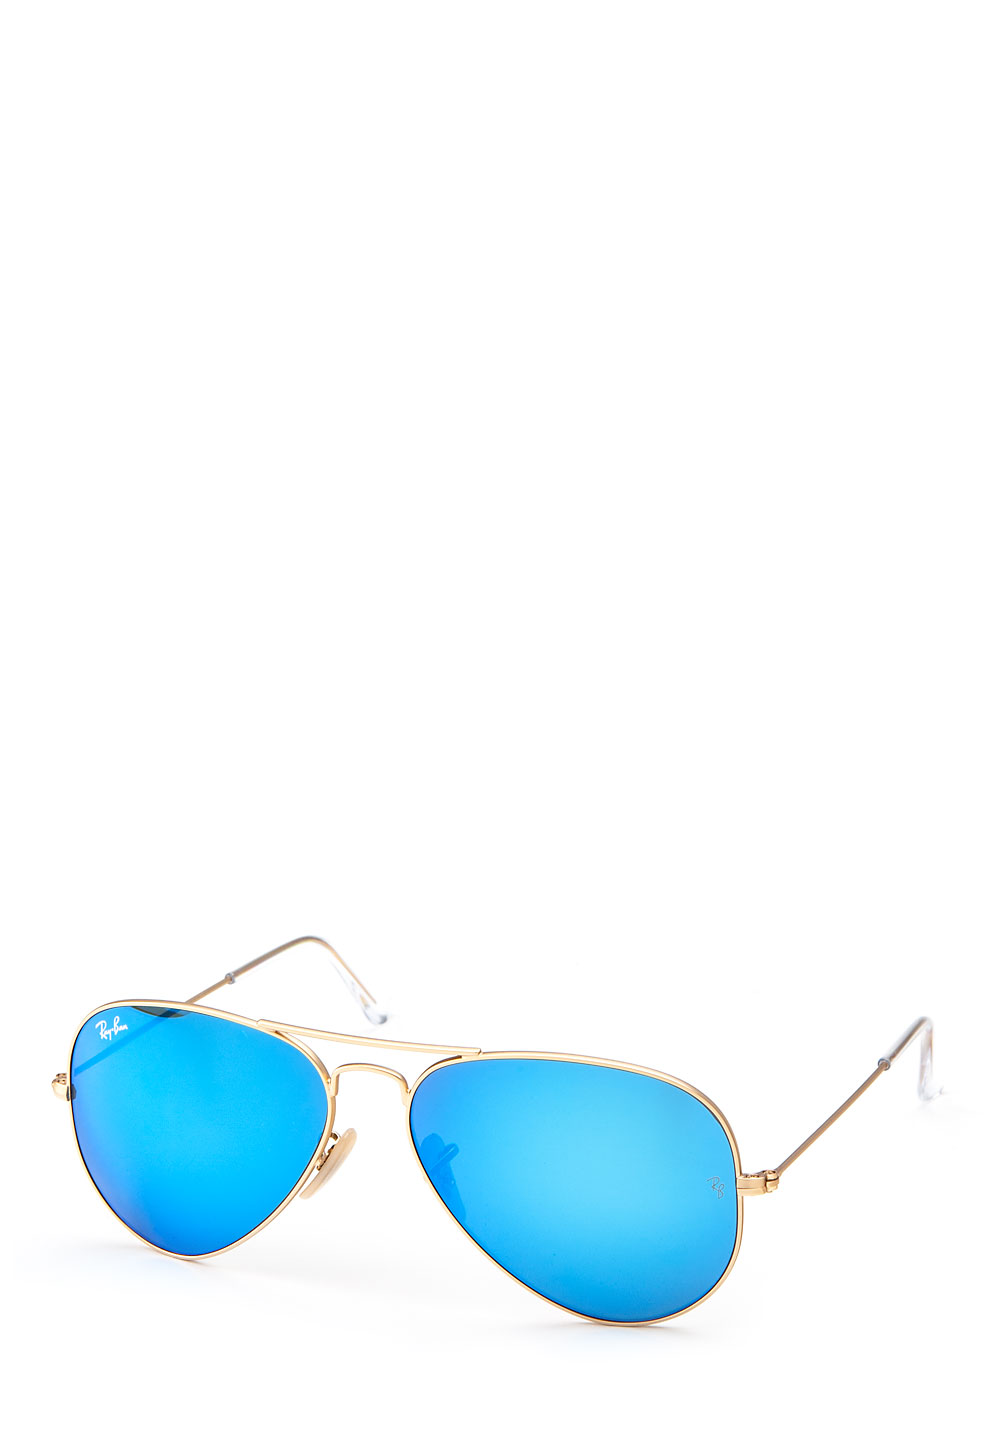 Sonnenbrille Aviator L, UV 400, golden